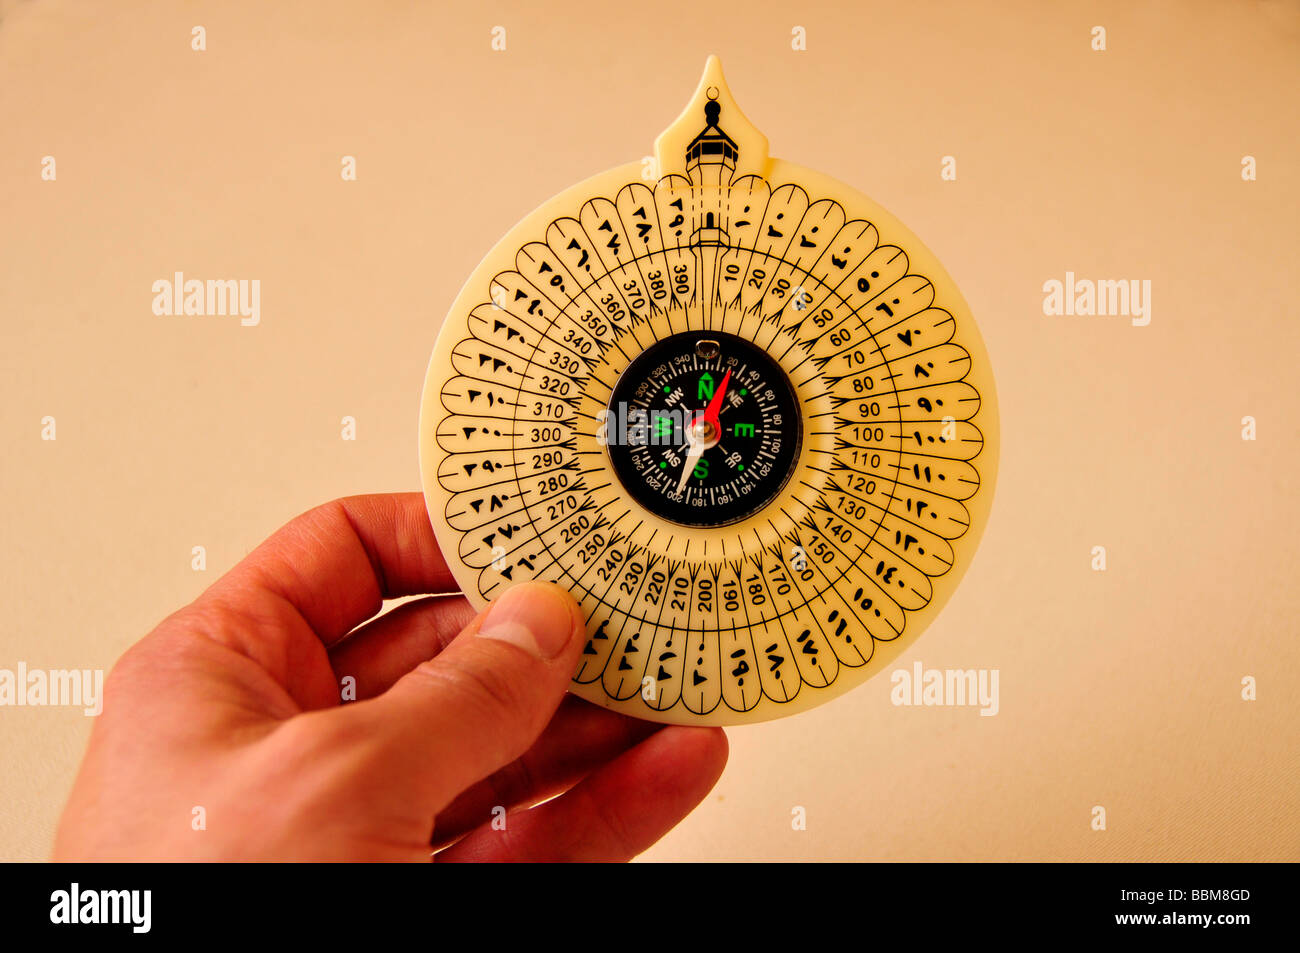 Compass for moslems, pointing in direction of Mecca, Abu Dhabi, United Arab Emirates, Arabia, Near East, Orient - Stock Image